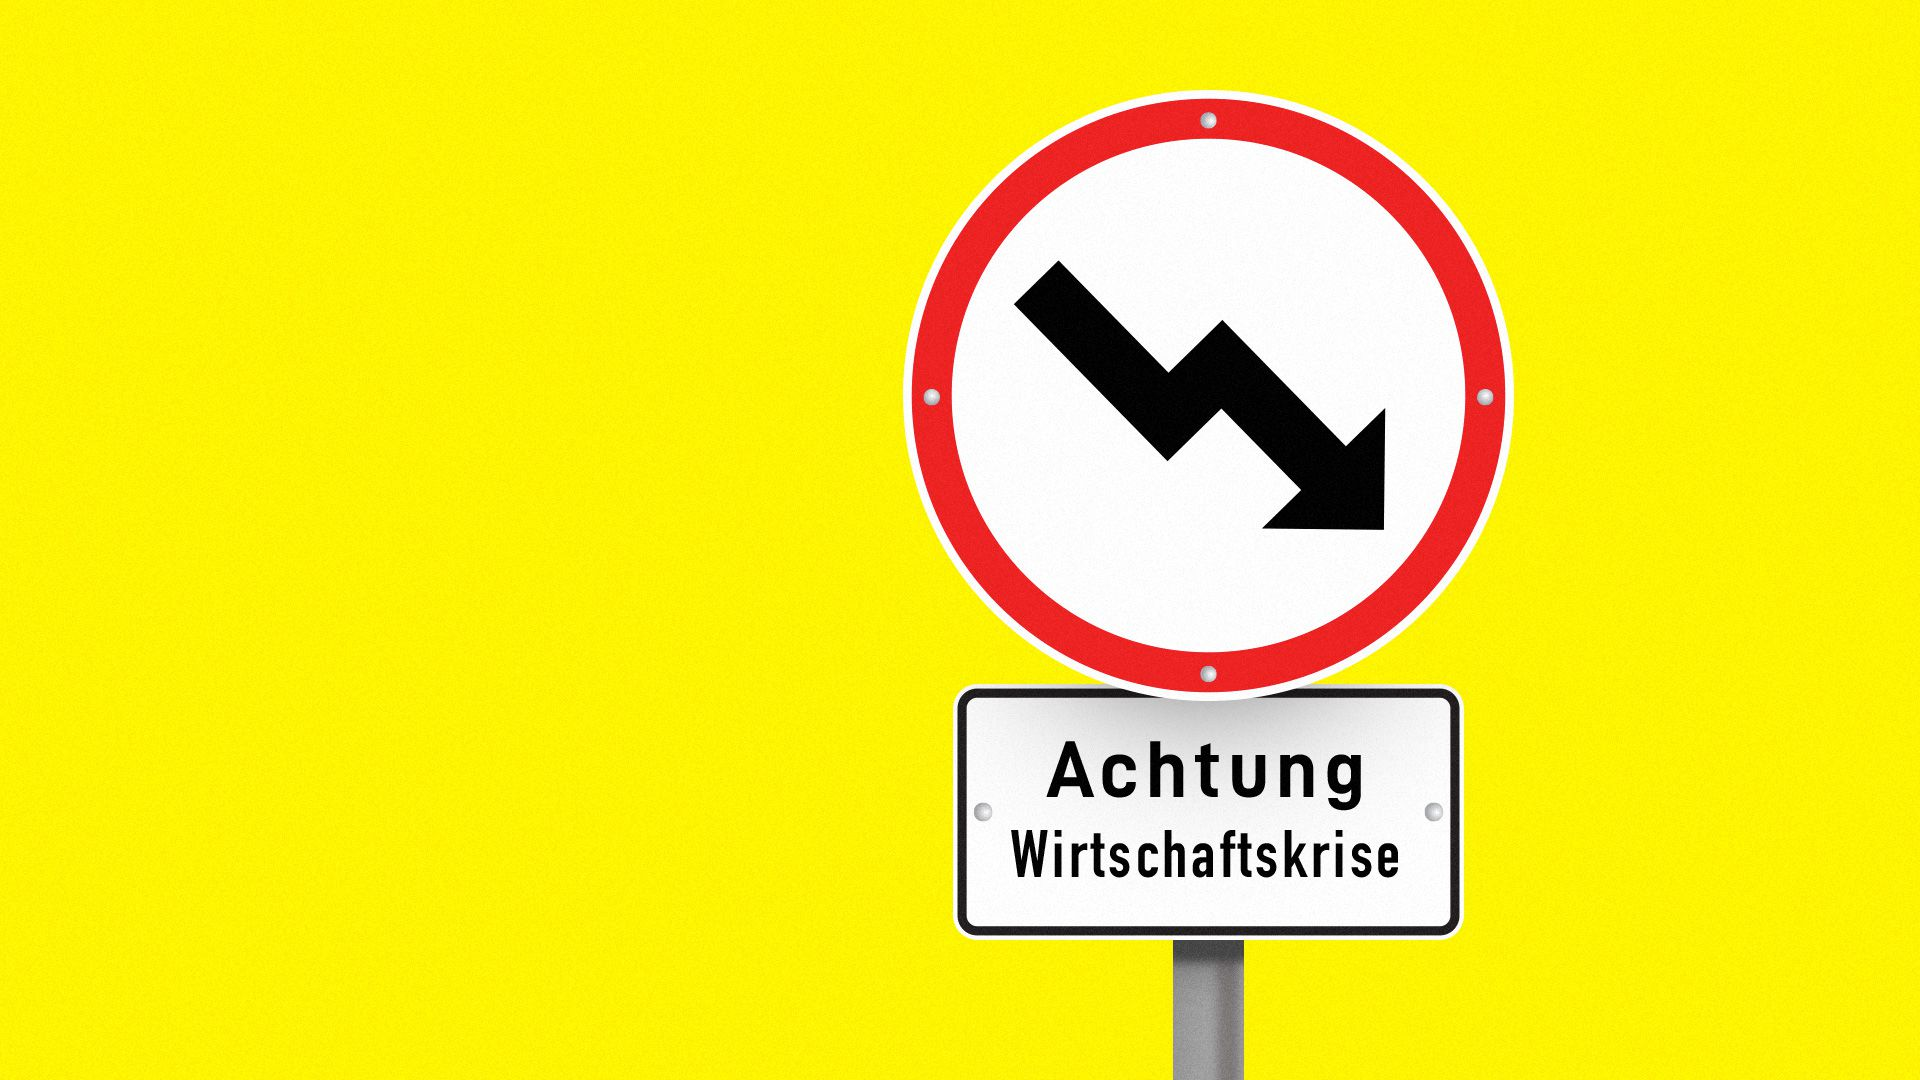 A sign in German warning us of an economic crisis.